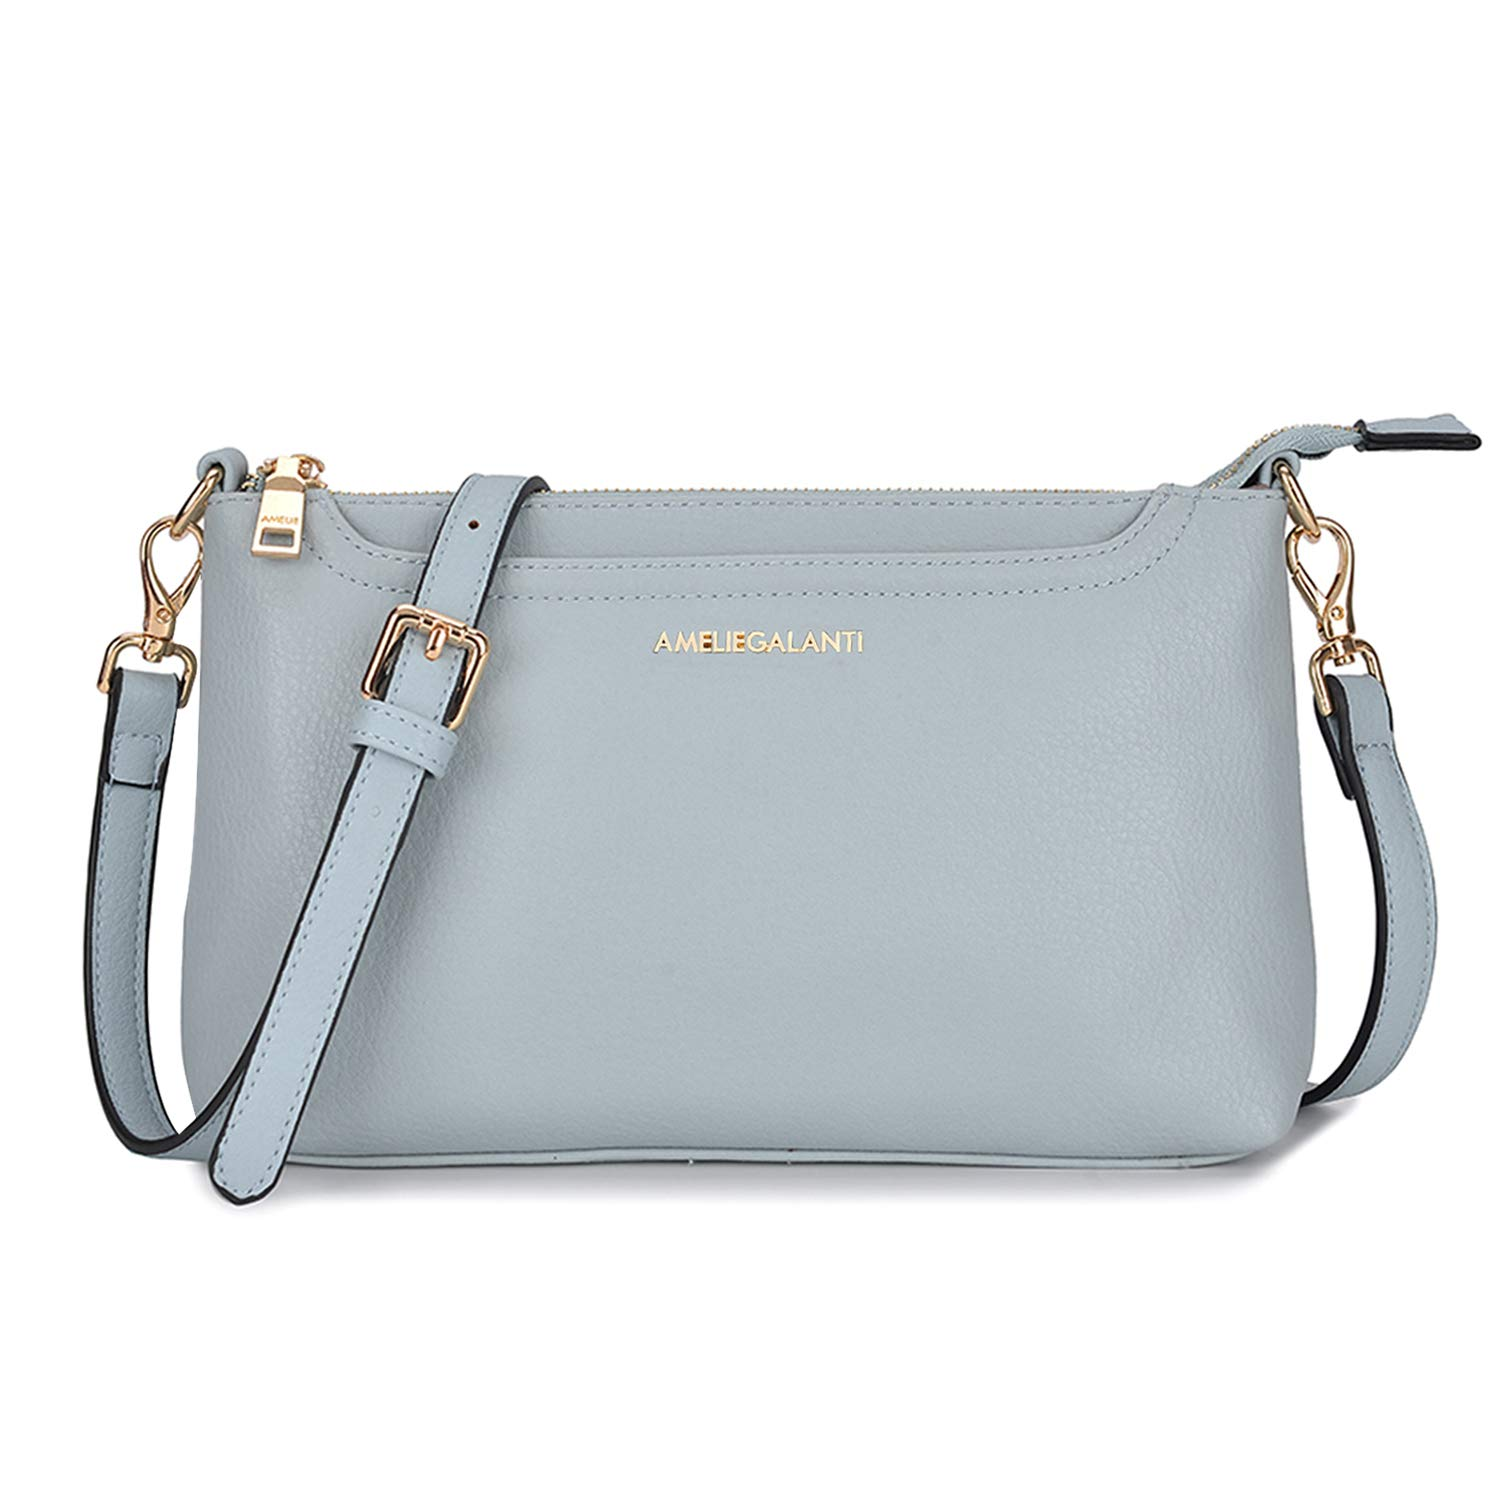 Review of Amelie Galanti Crossbody Bags for Women